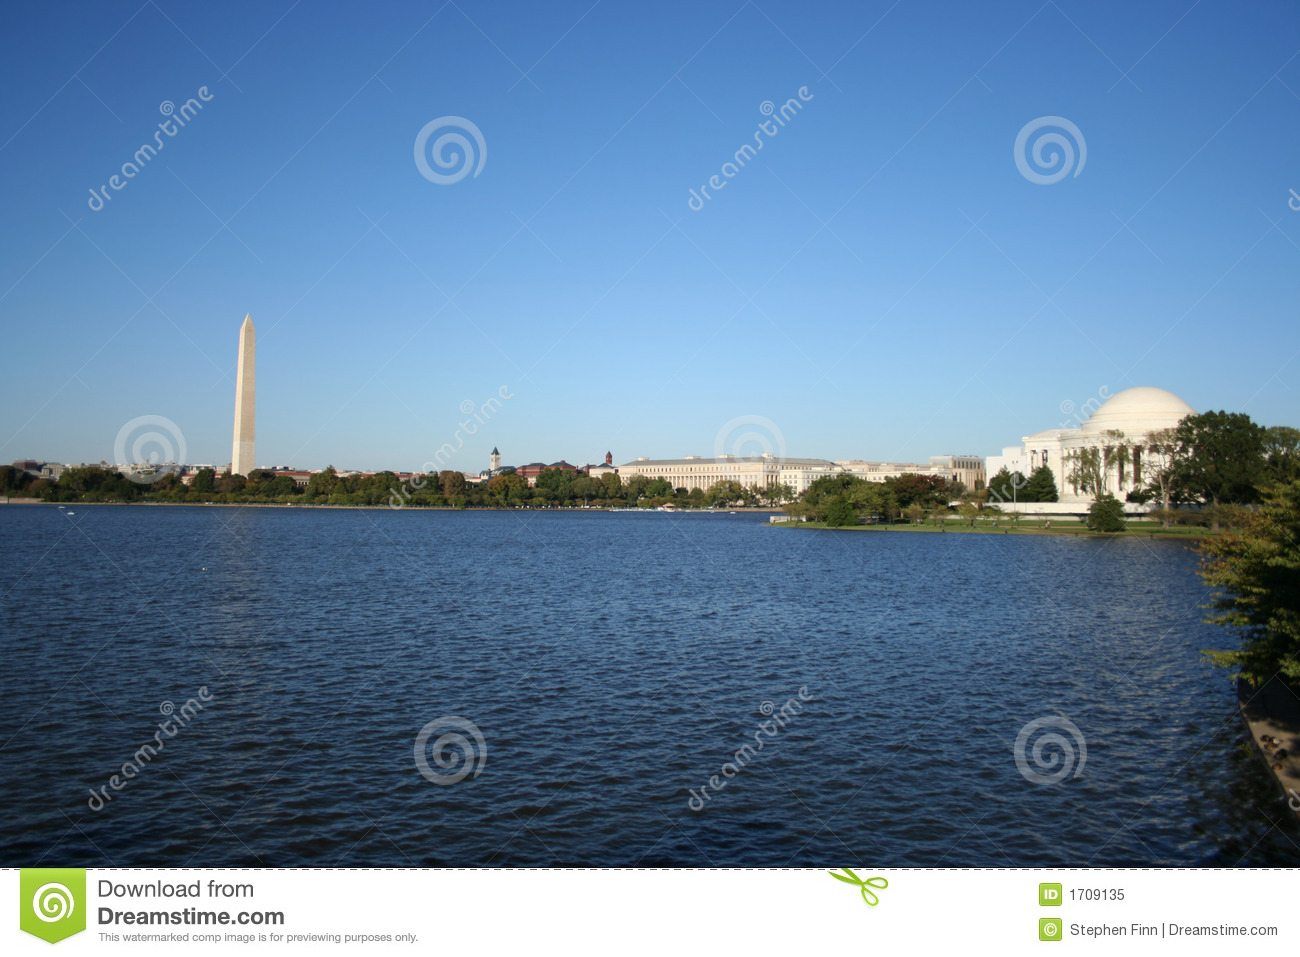 Tidal pool washington dc royalty free stock photo image for Pool design washington dc